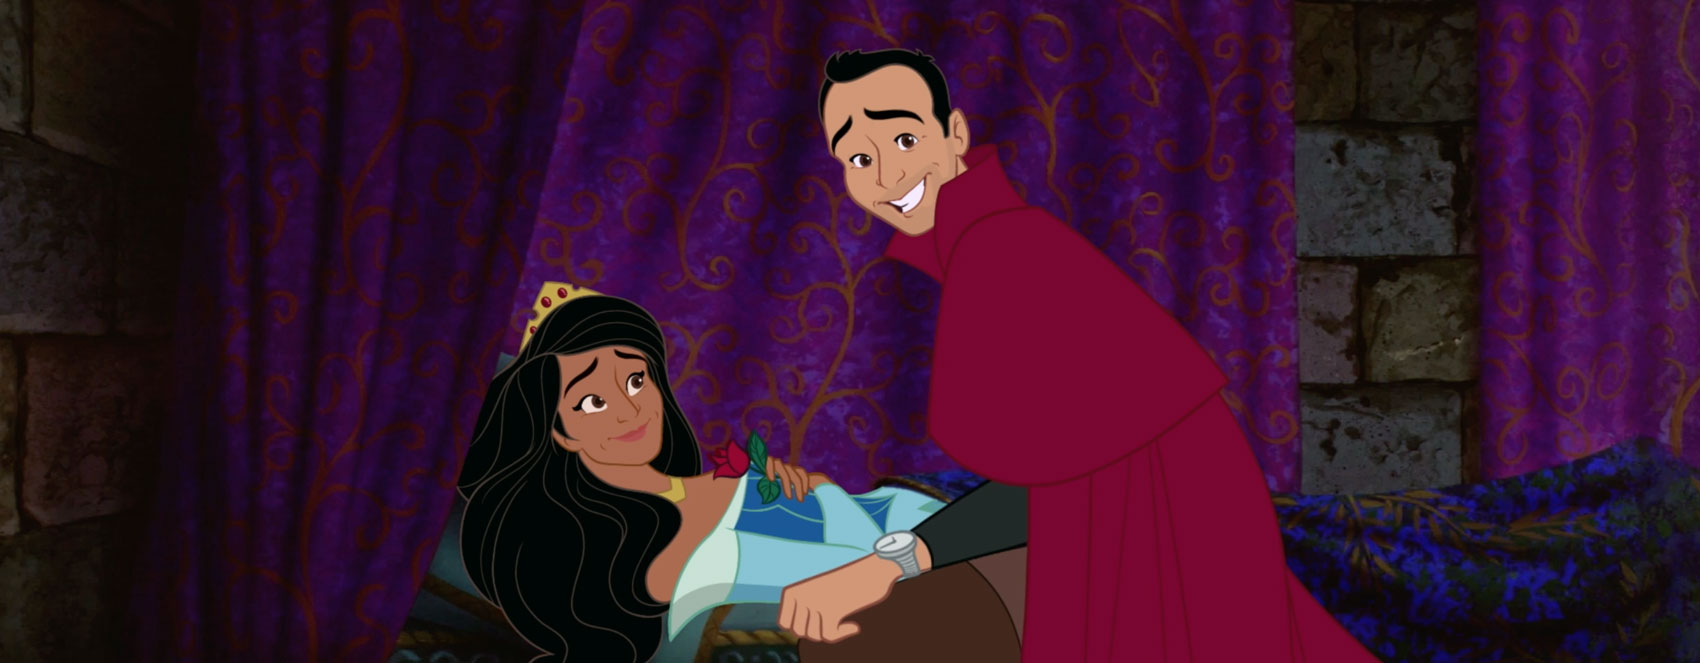 animated still from the re-imagined Sleeping Beauty showing Sthuthi David, AKA the princess, and Lee Loechler, AKA the prince